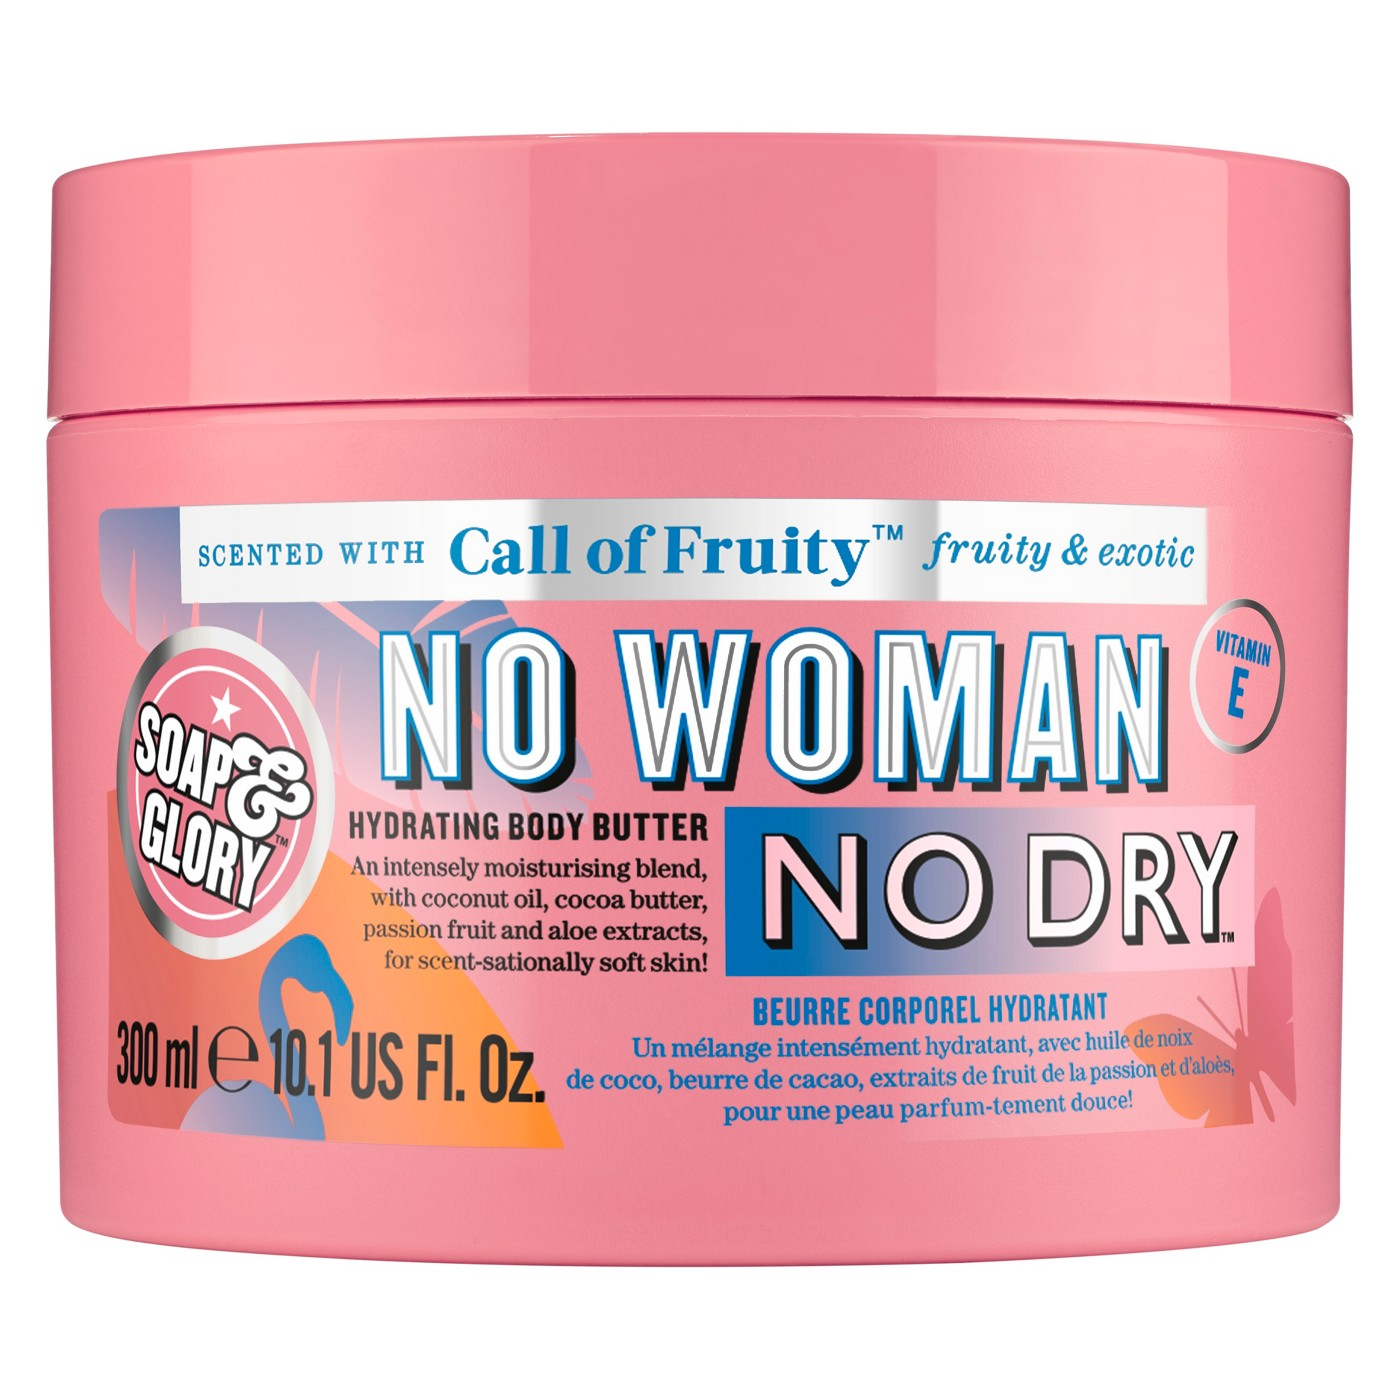 soap-and-glory-no-woman-no-dry